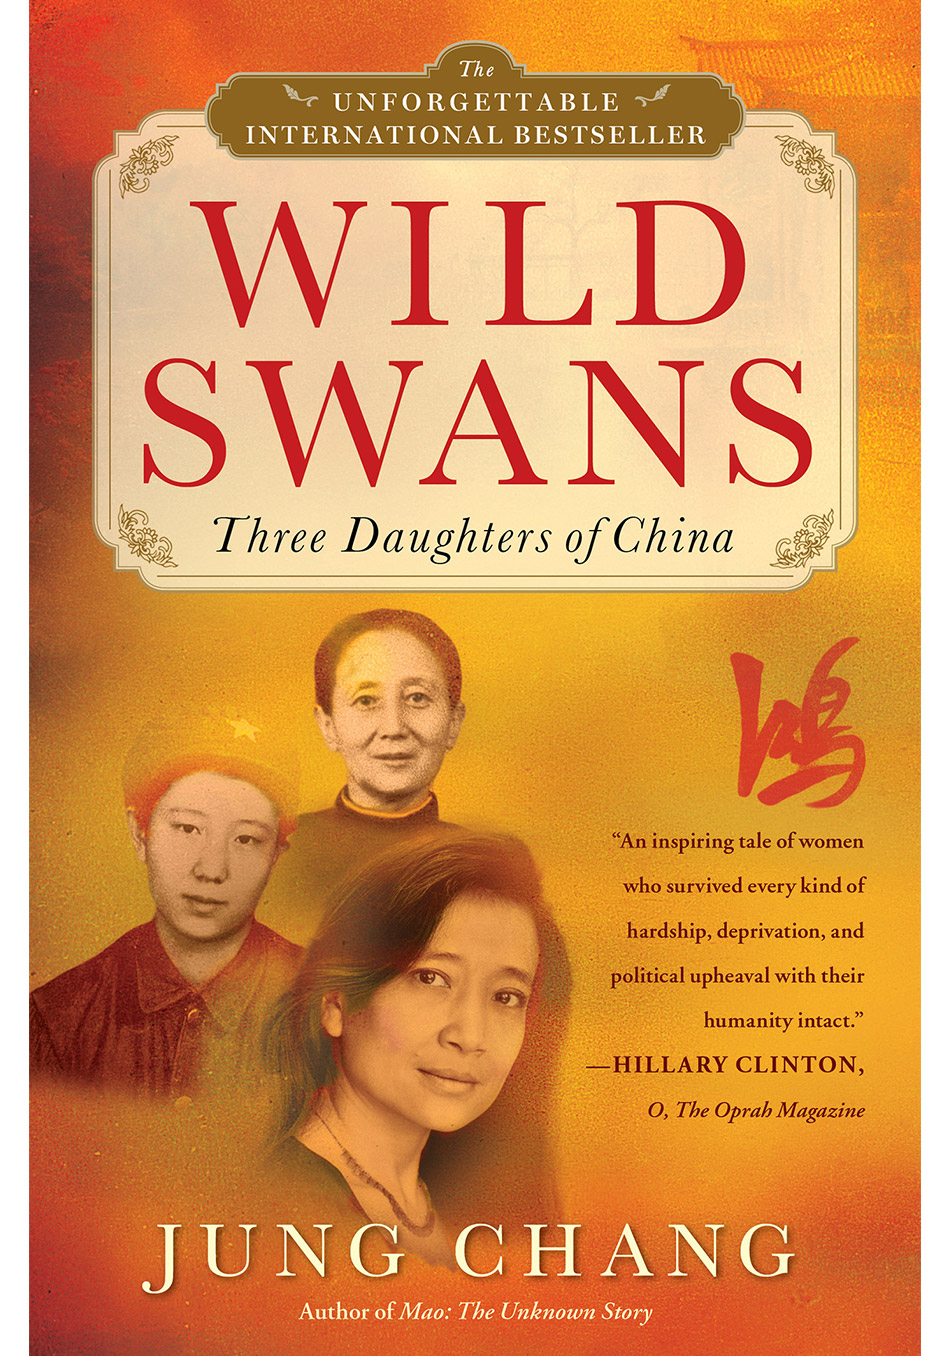 wild swans about three child associated with china